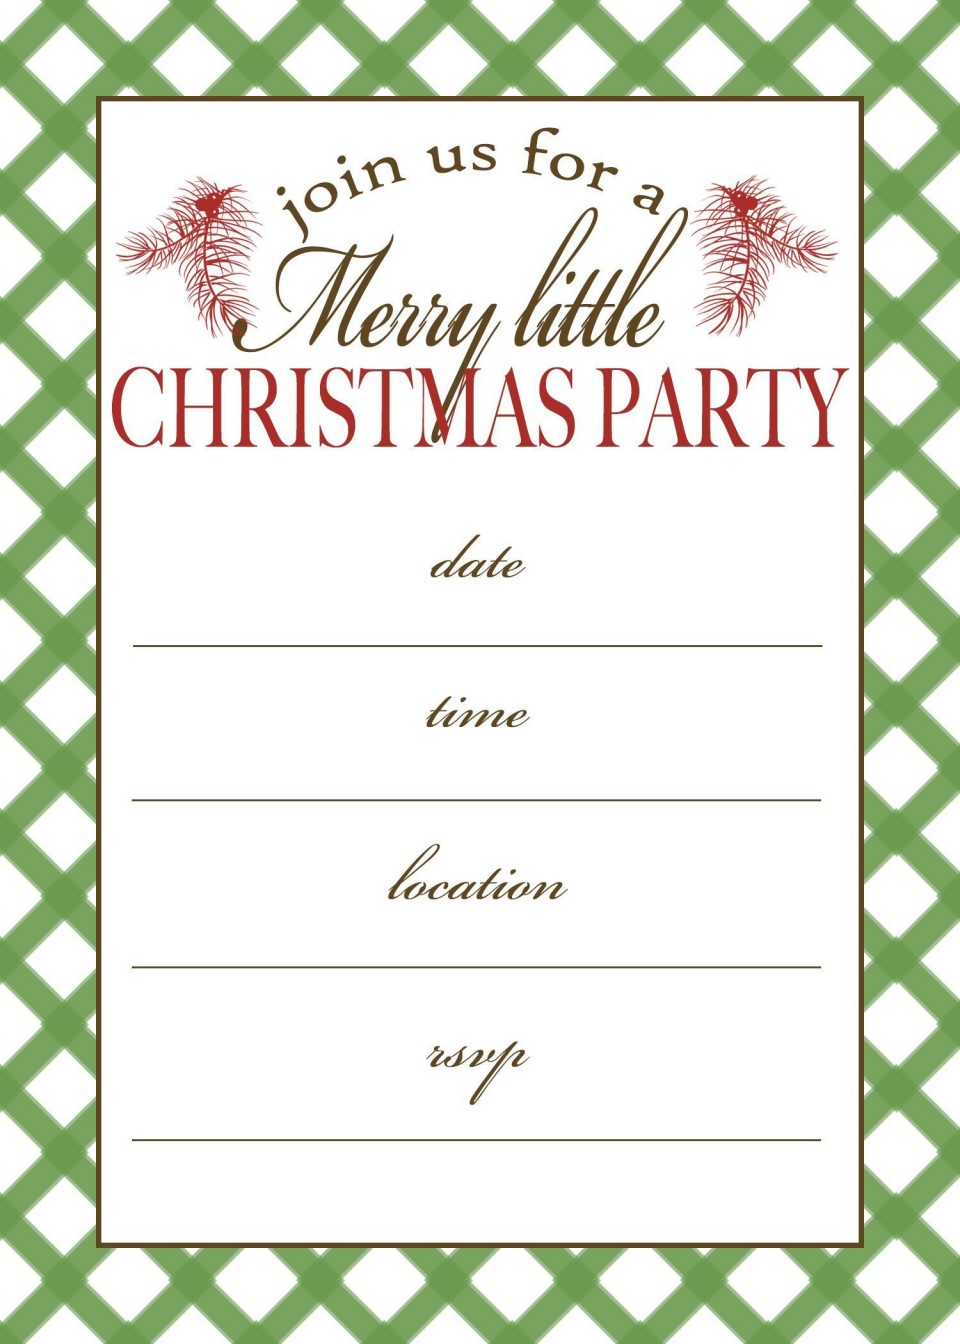 001 Incredible Christma Party Invitation Template Sample  Funny Free Download Word Card960